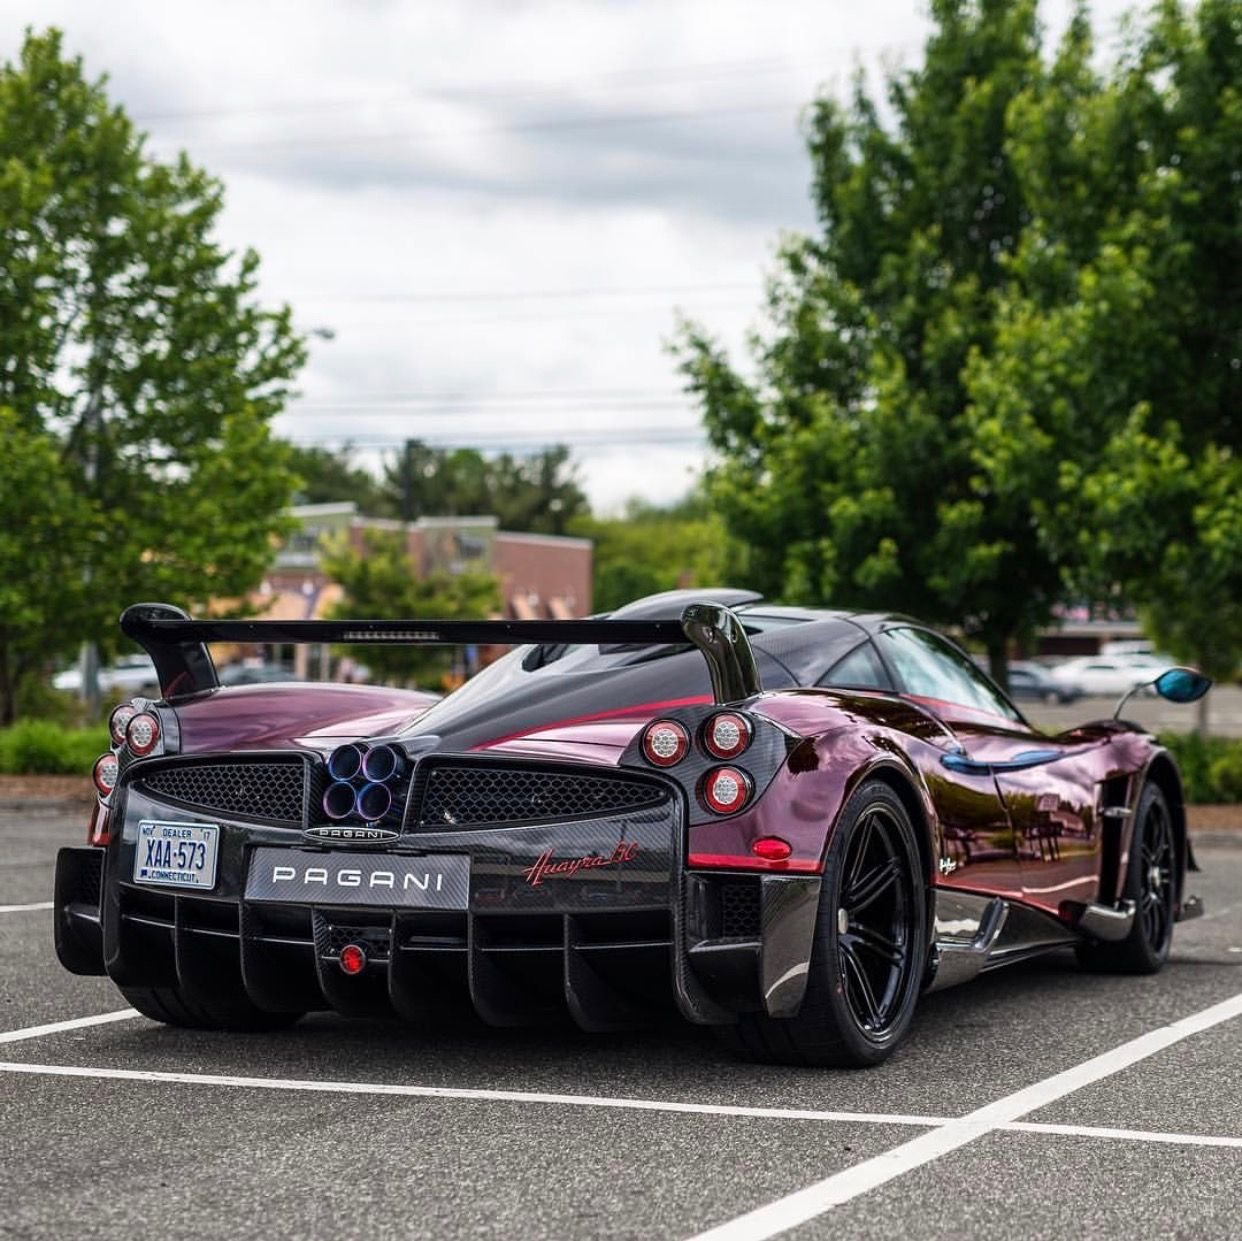 pagani huayra bc kingtasma in red and black carbon fiber w red accents tricolore stripes. Black Bedroom Furniture Sets. Home Design Ideas